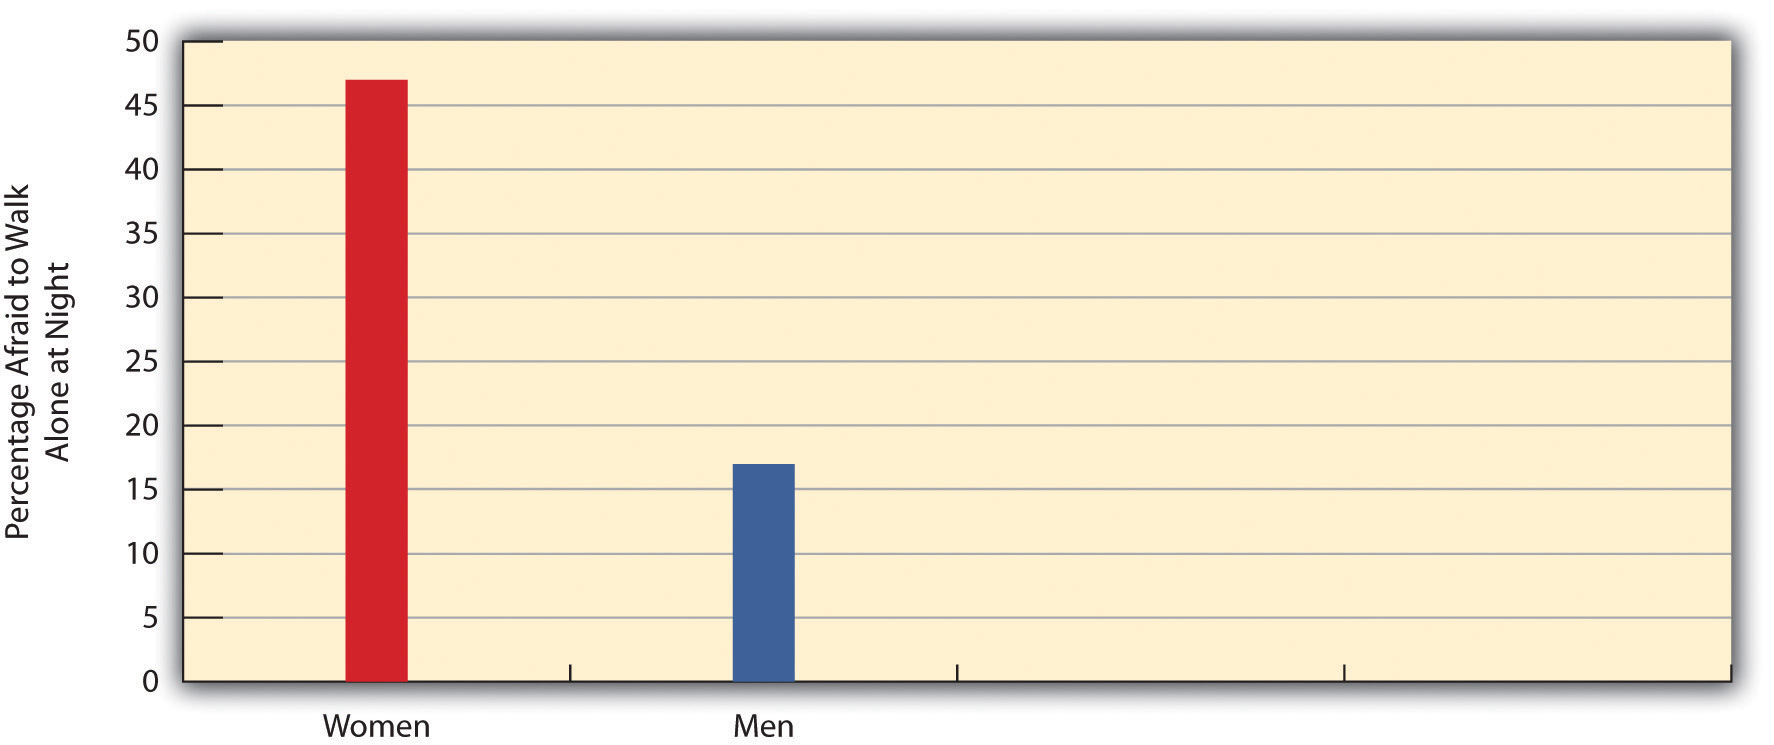 This graph of gender and fear of crime shows that women are much more fearful than men